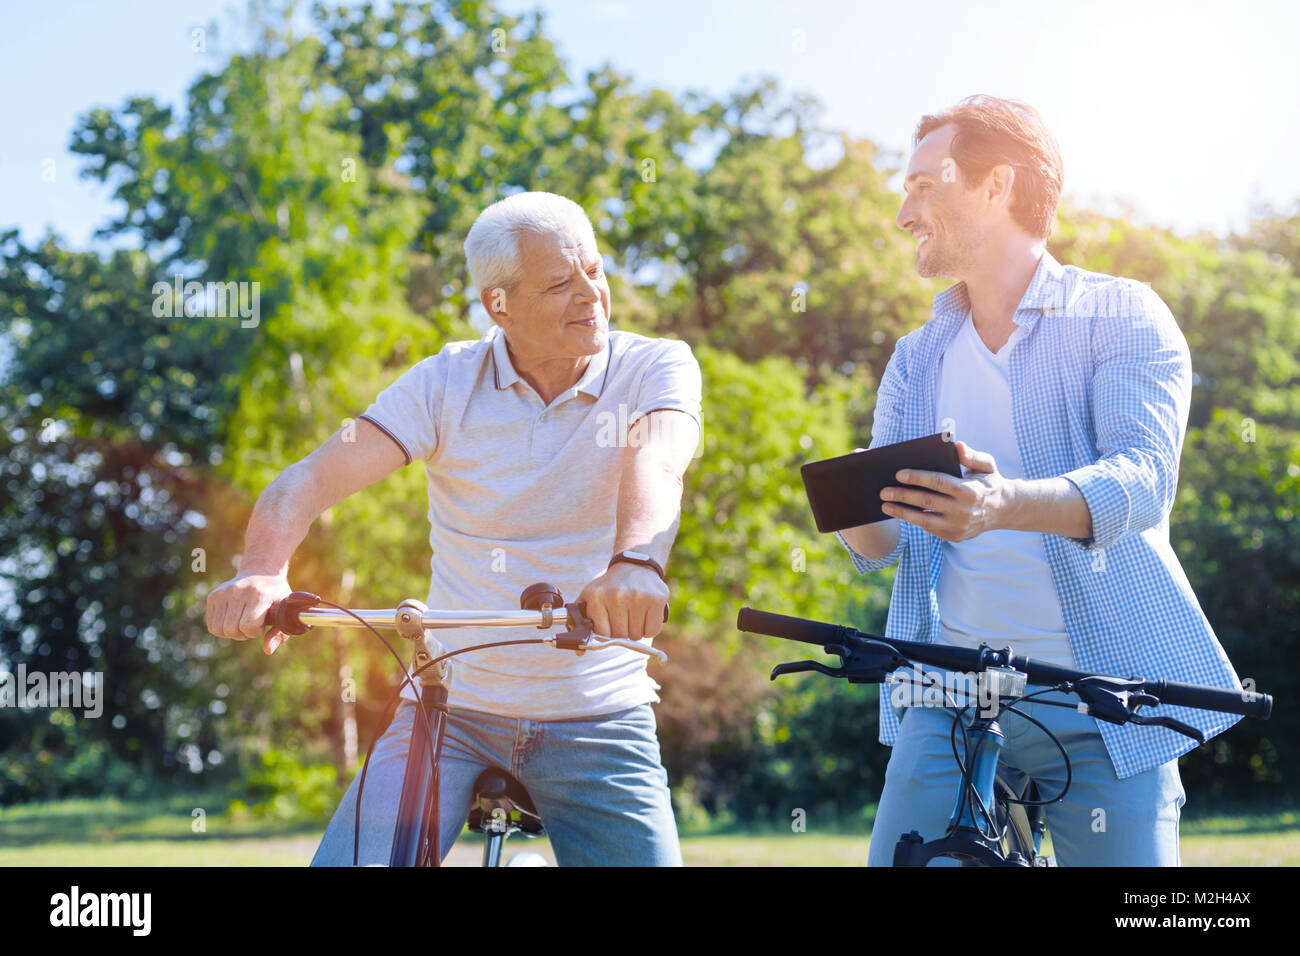 Father and son using touchpad while riding their bicycles Stock Photo